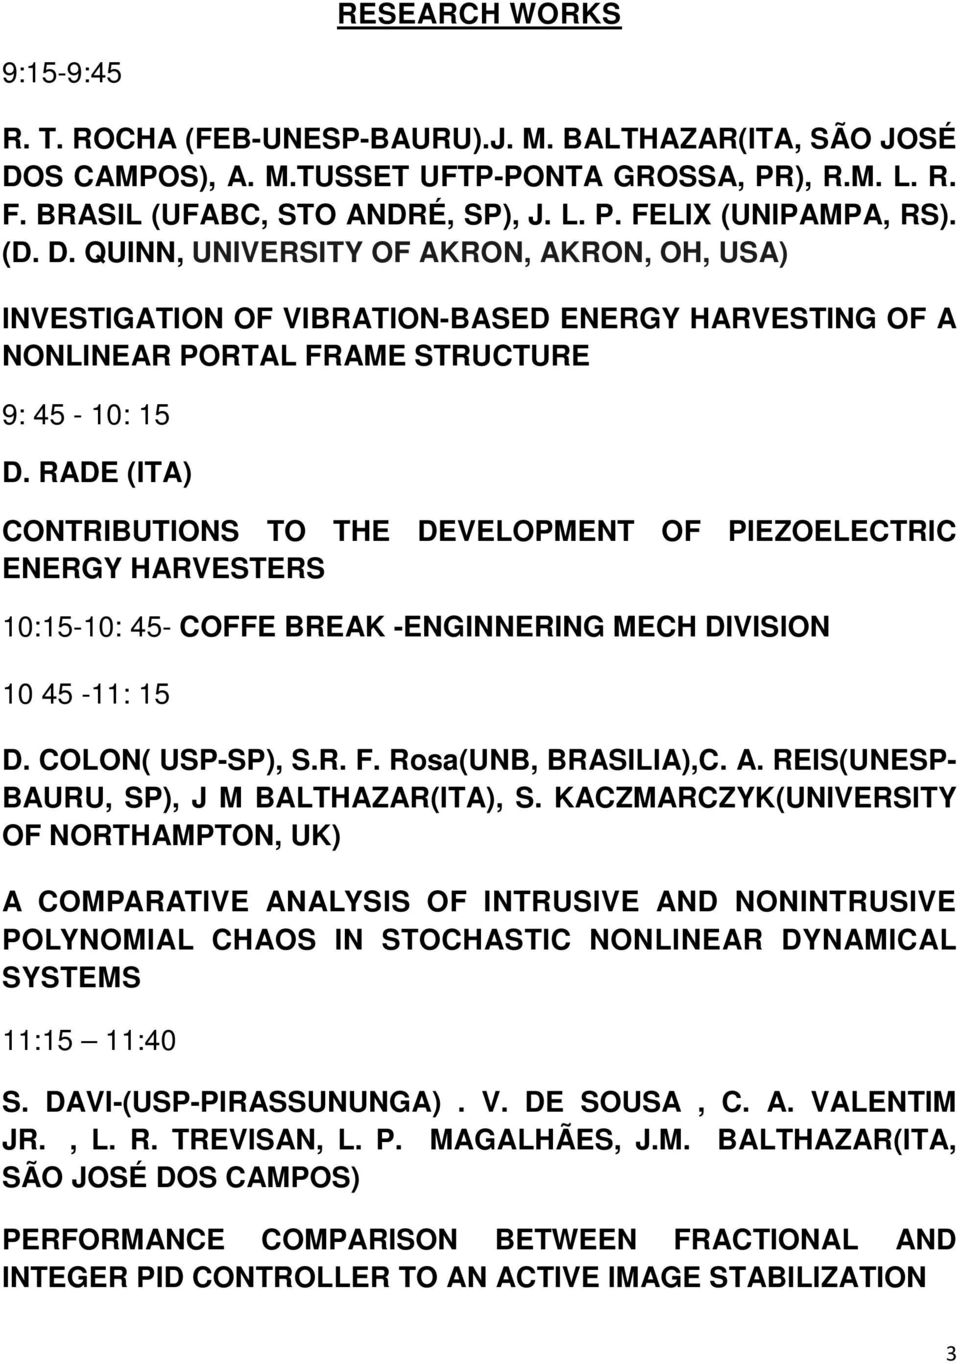 RADE (ITA) CONTRIBUTIONS TO THE DEVELOPMENT OF PIEZOELECTRIC ENERGY HARVESTERS 10:15-10: 45- COFFE BREAK -ENGINNERING MECH DIVISION 10 45-11: 15 D. COLON( USP-SP), S.R. F. Rosa(UNB, BRASILIA),C. A.